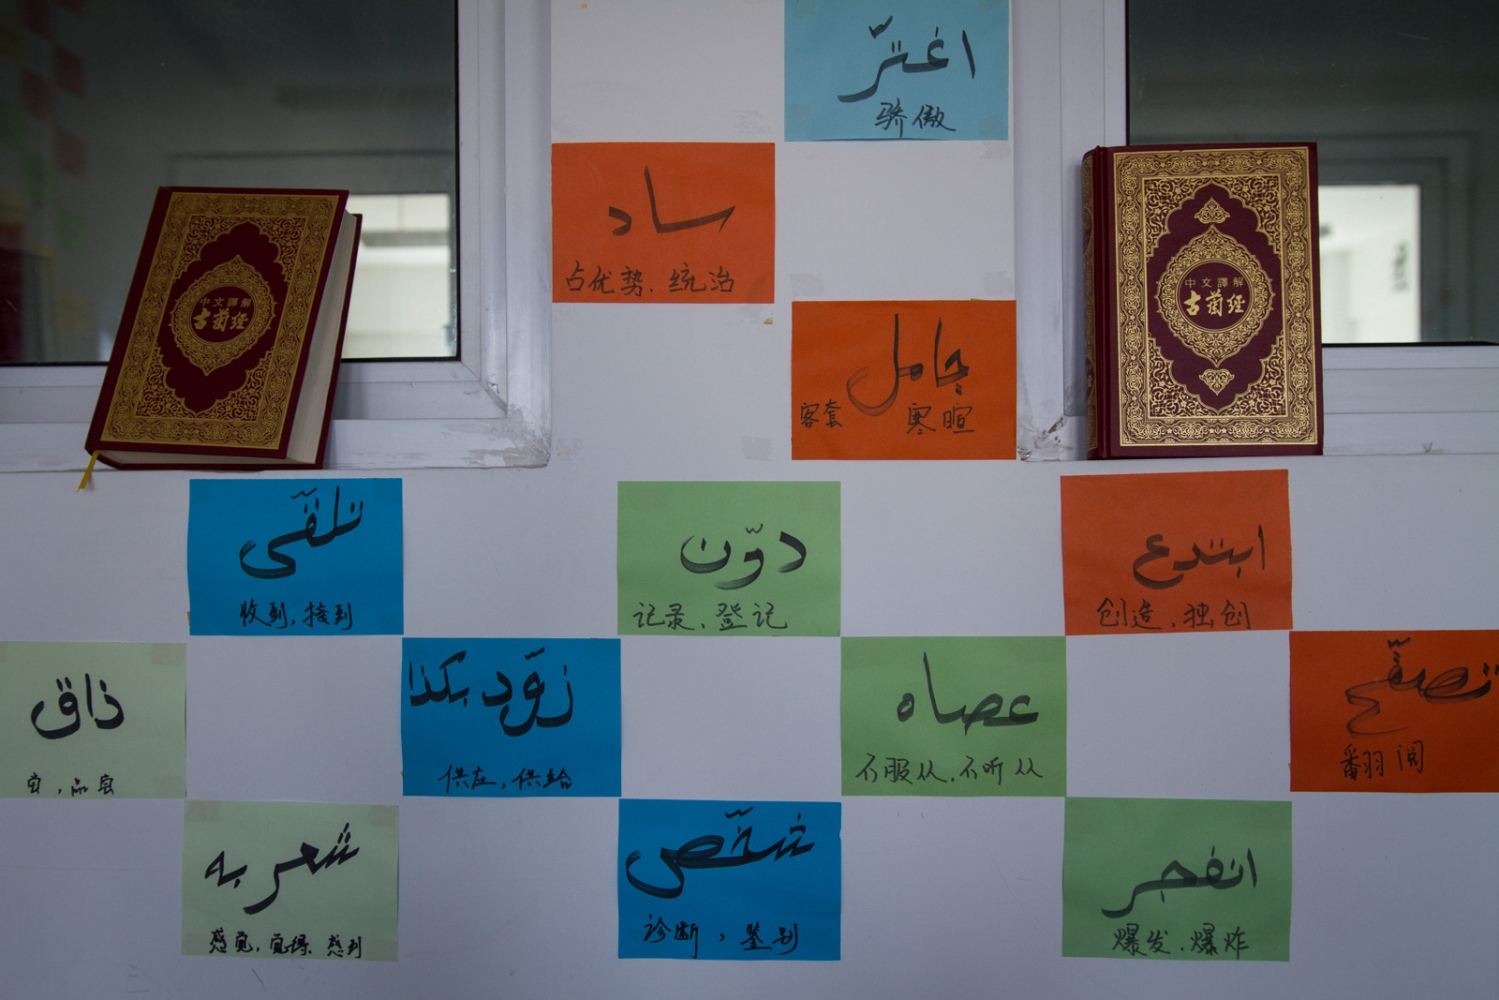 Two copies of Quran are put by the window in a classroom where students paste Arabic vocabulary cards all over the wall, at Ningxia International Language College in Yongning County, Ningxia Province, China, March 25, 2016.